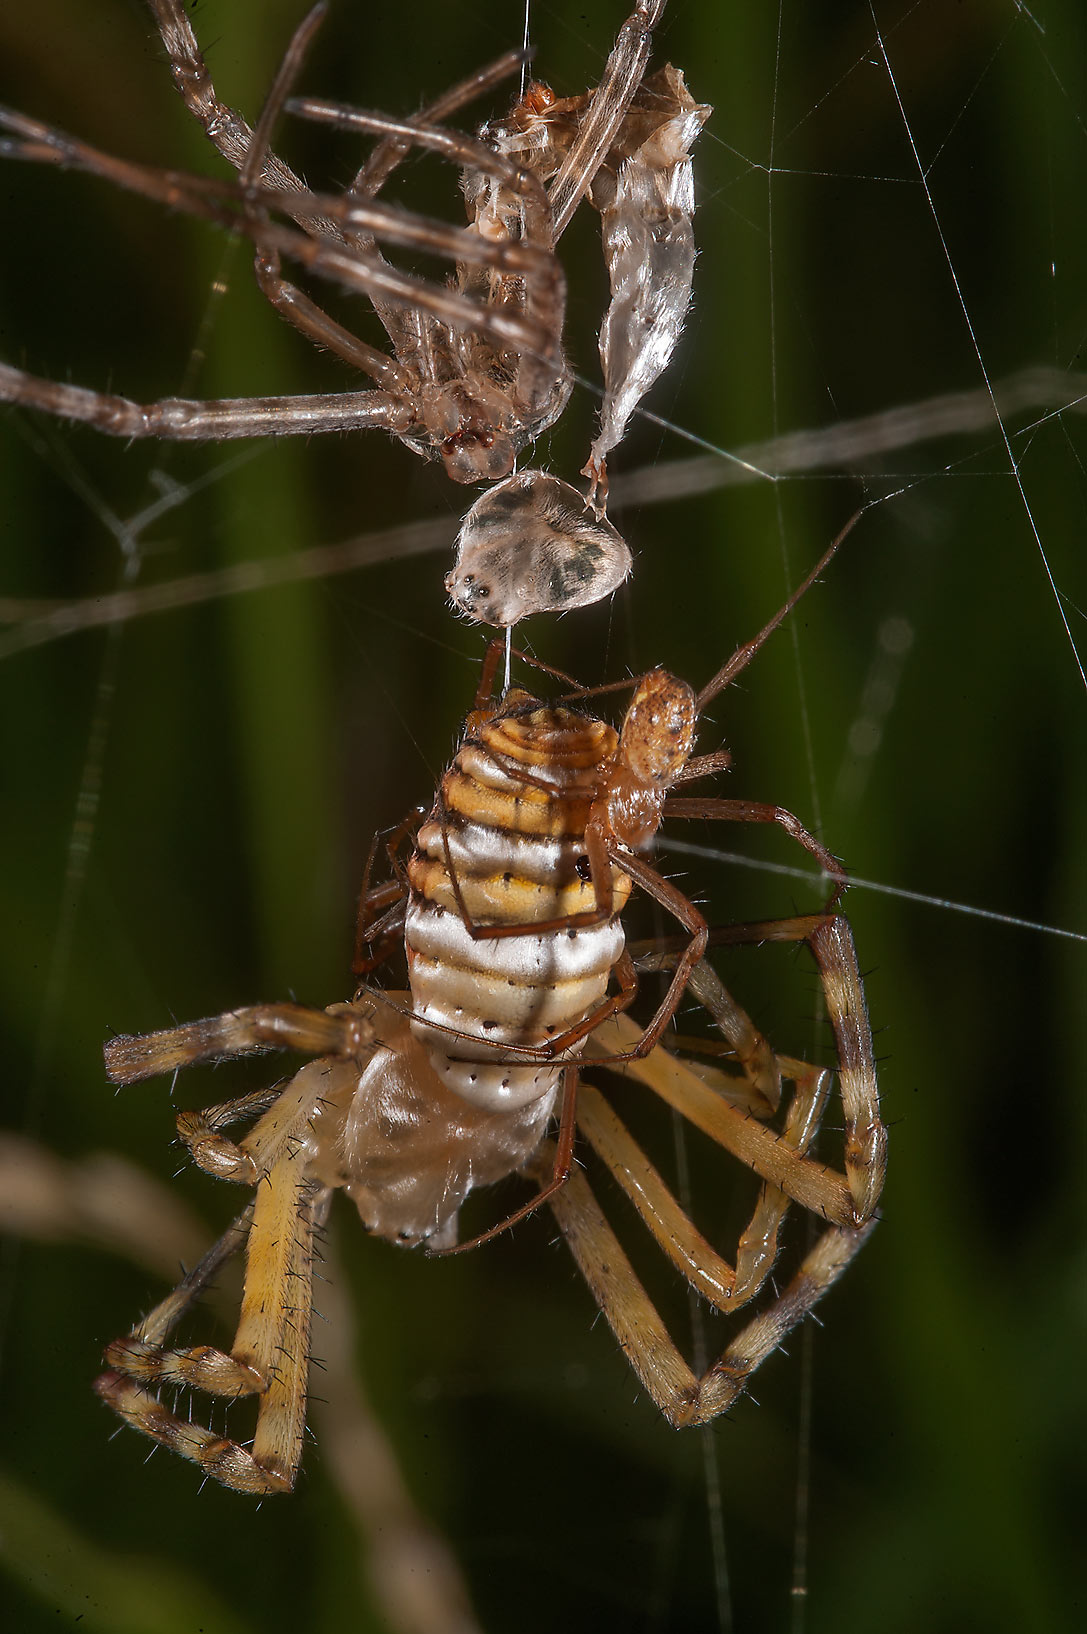 Two mating yellow garden spiders (Argiope...in Irkhaya (Irkaya) Farms. Qatar